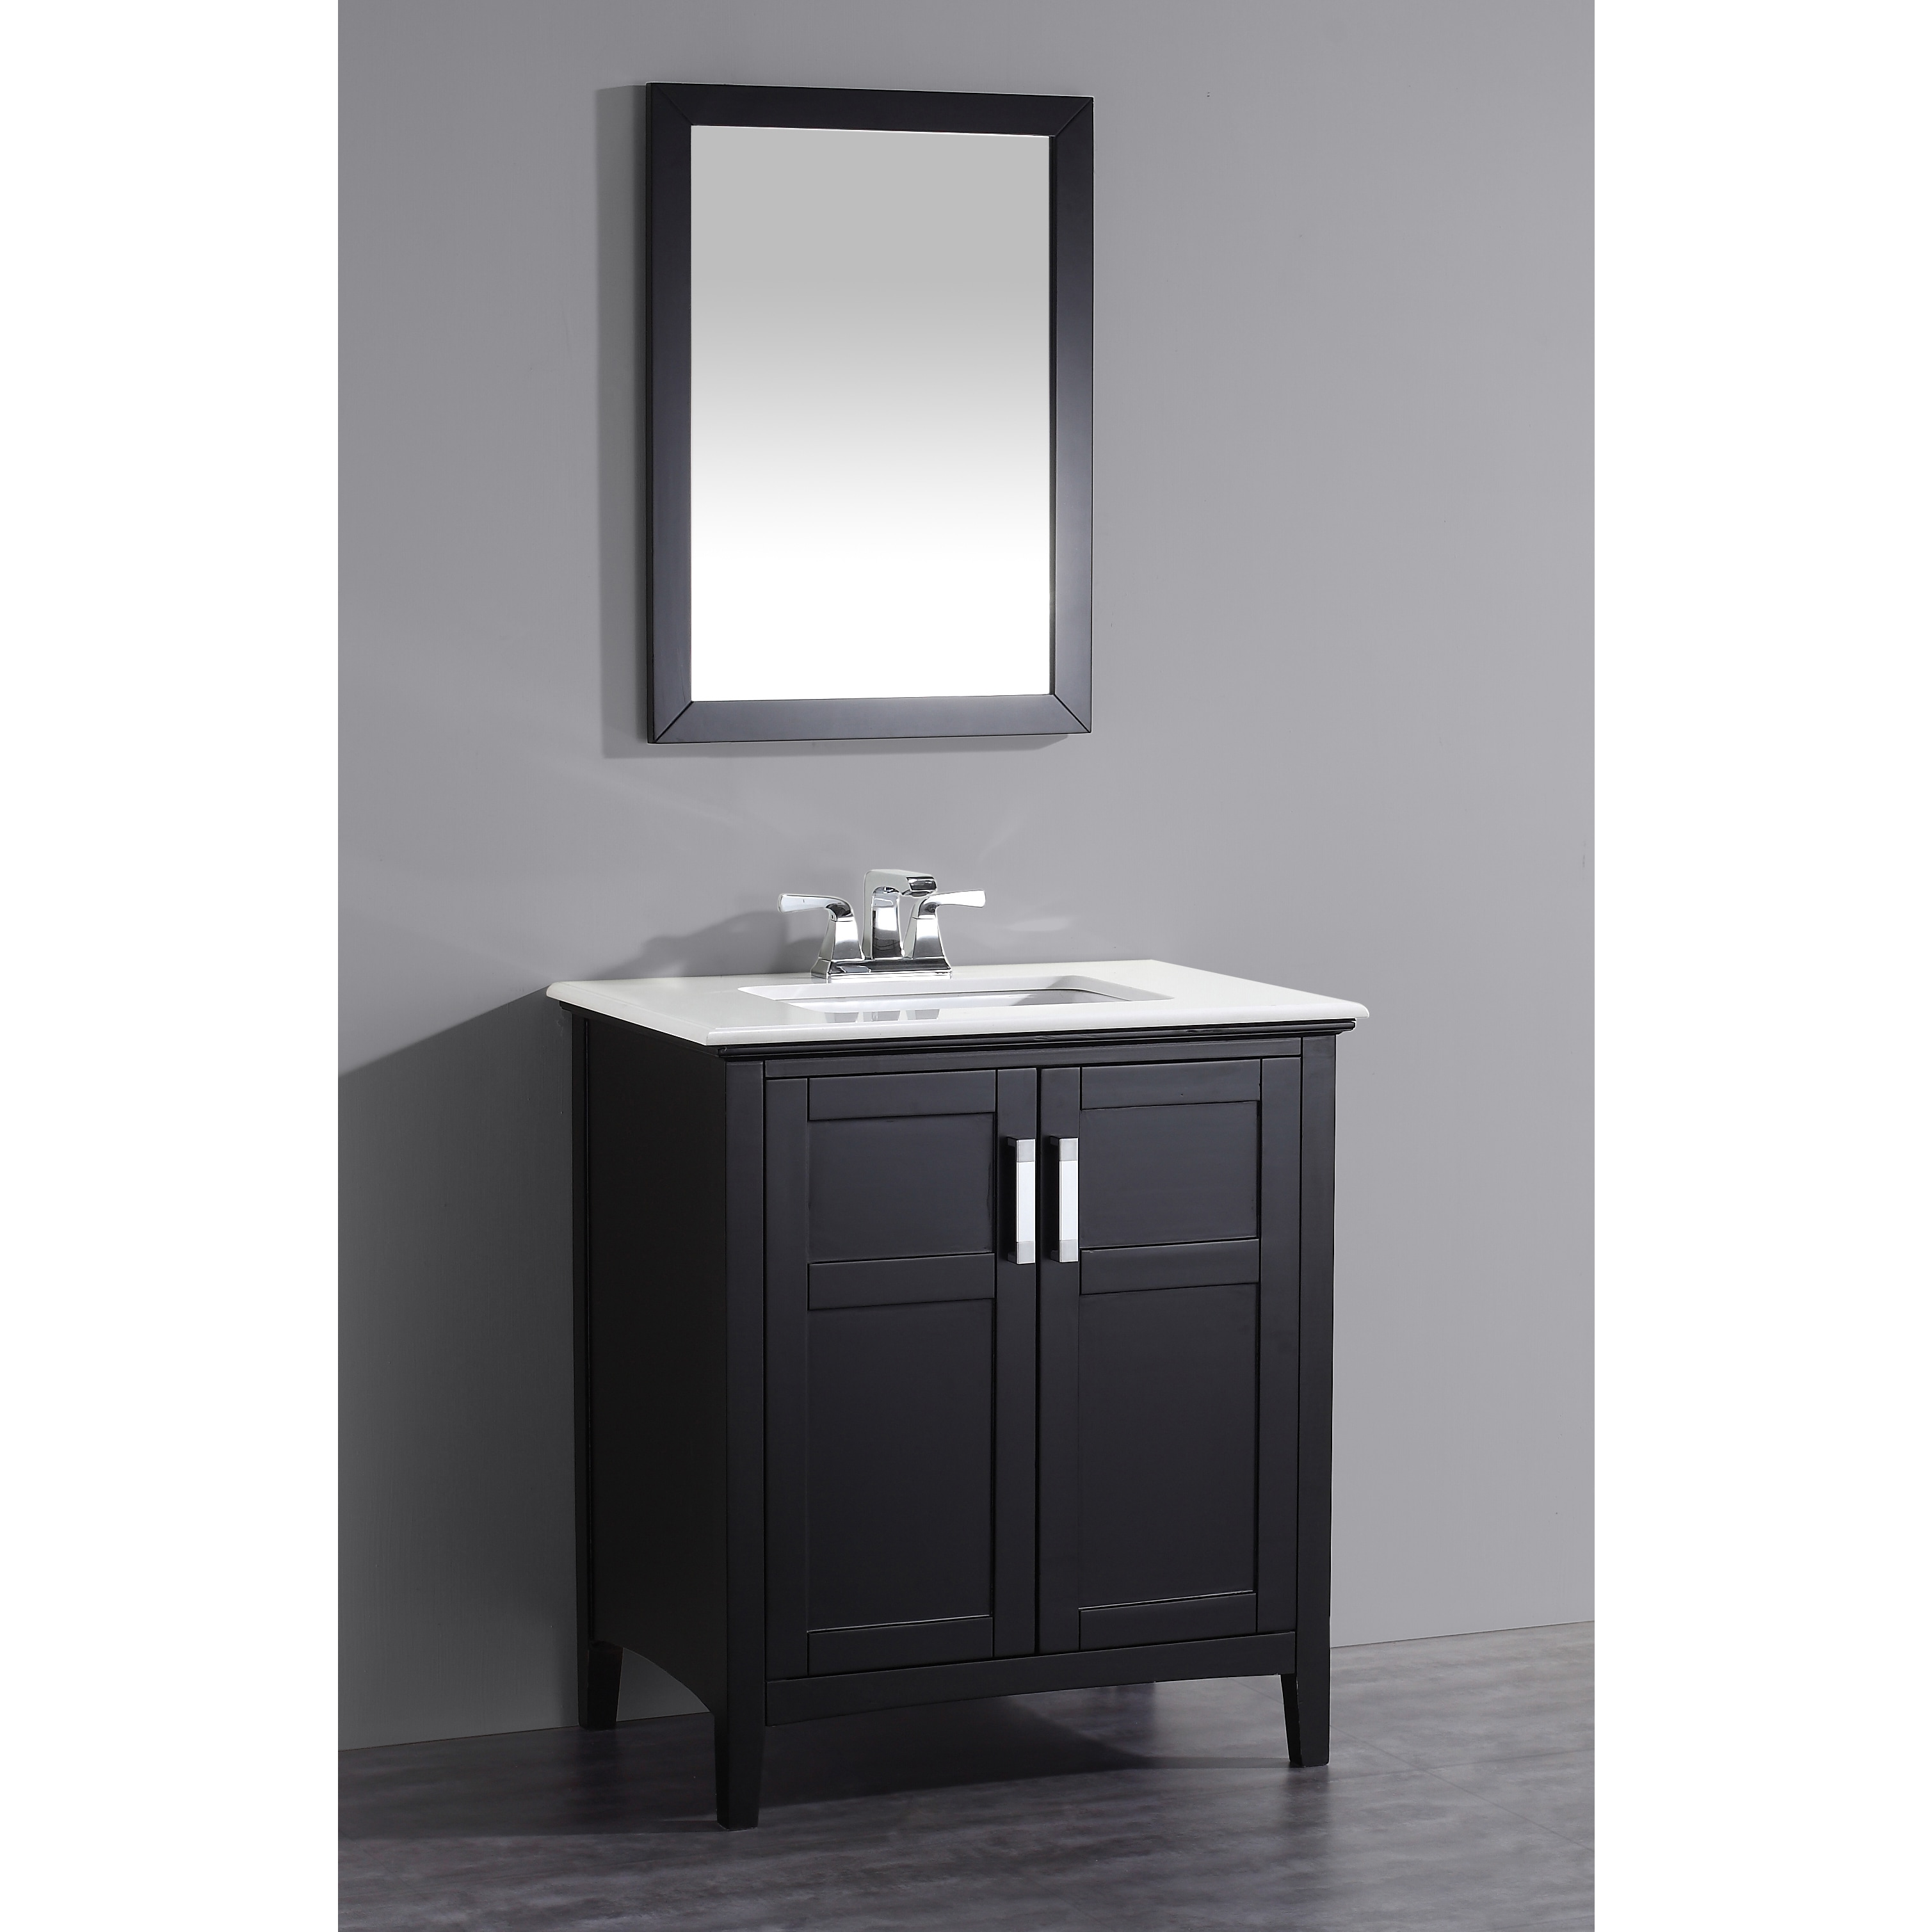 Wyndenhall salem black 30 inch bath vanity with 2 doors and white